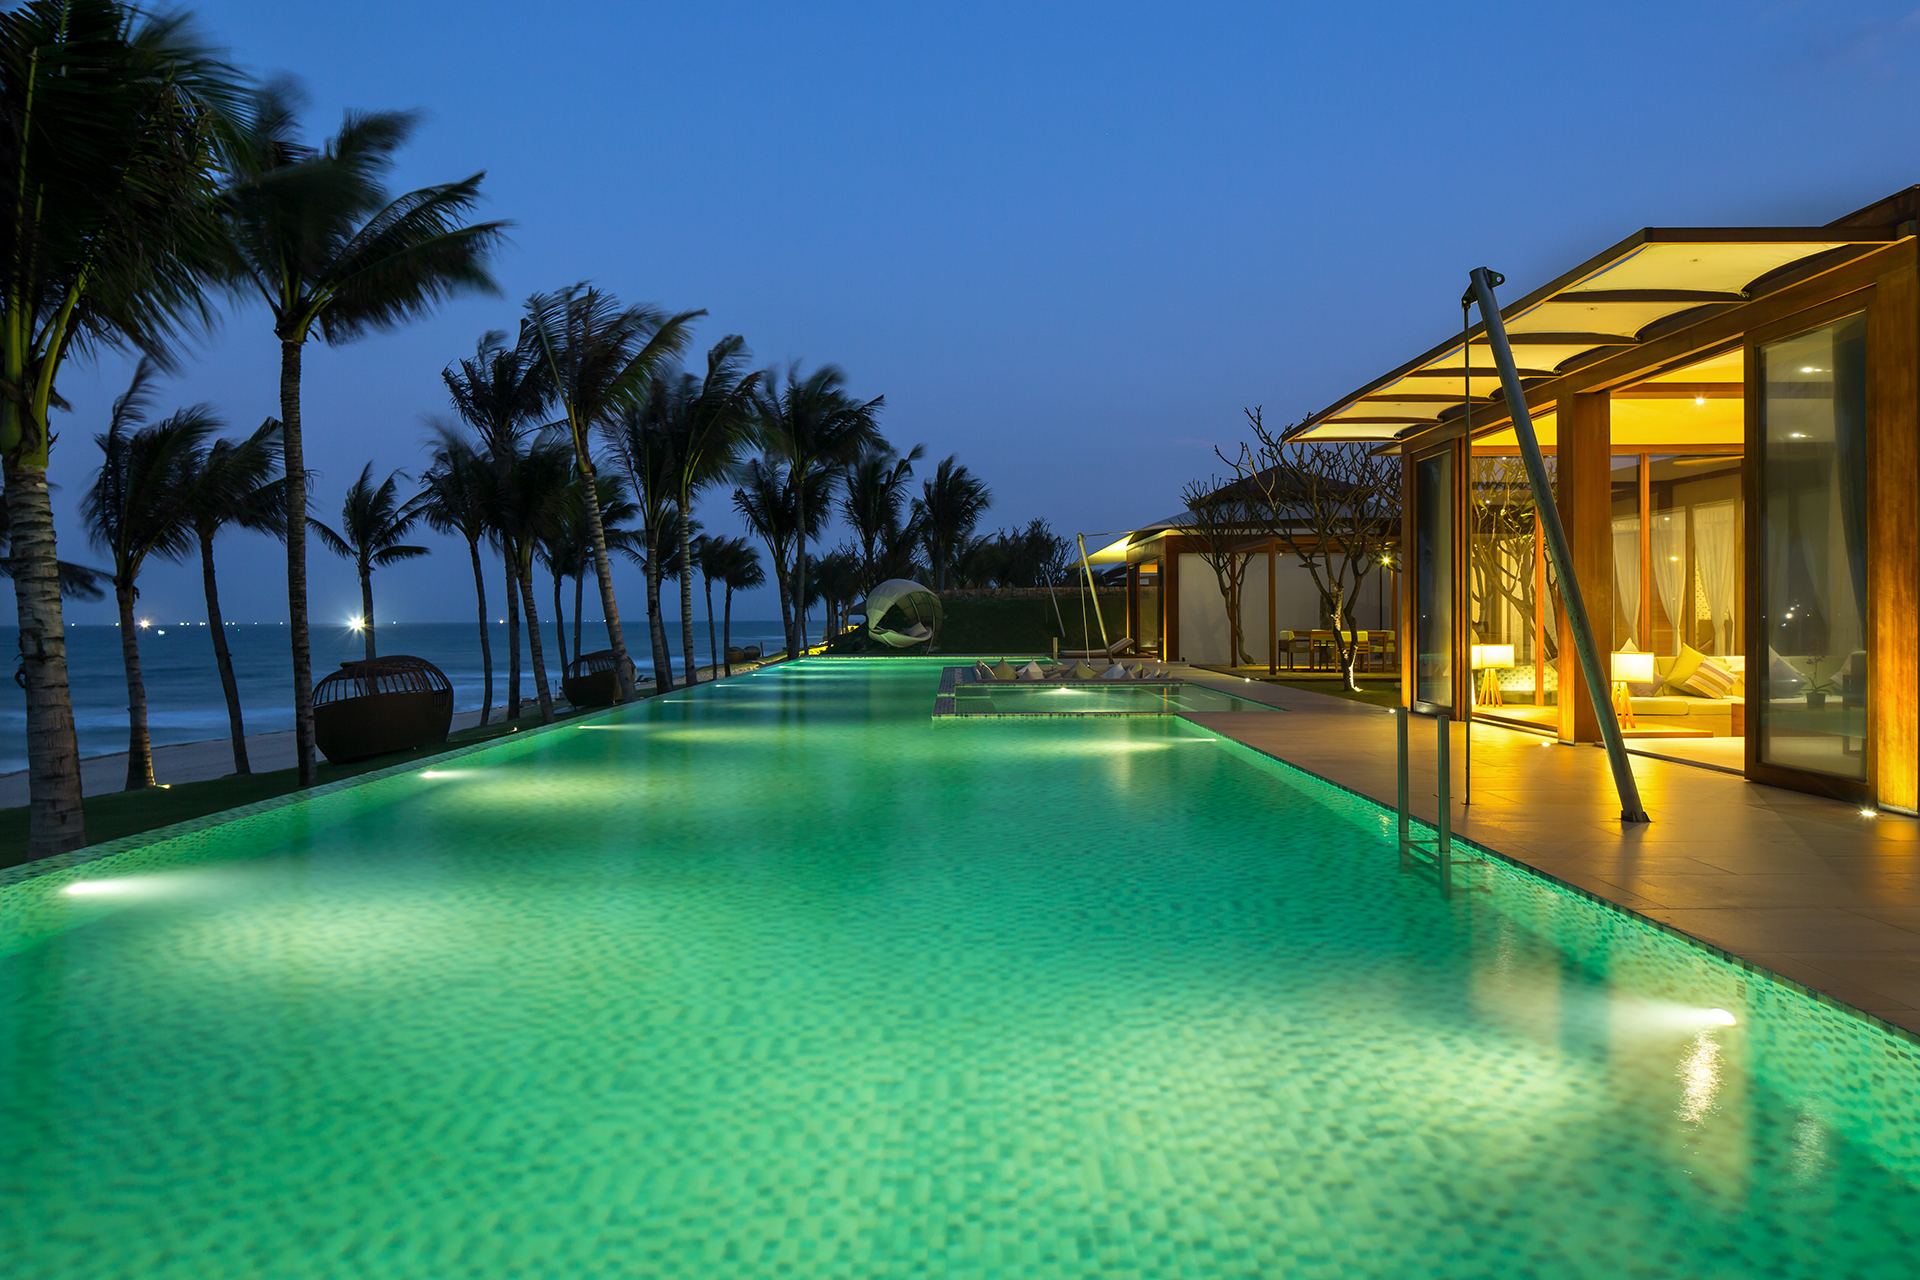 fusion-resort-nha-trang-serenity-holding-swimming-pool ...